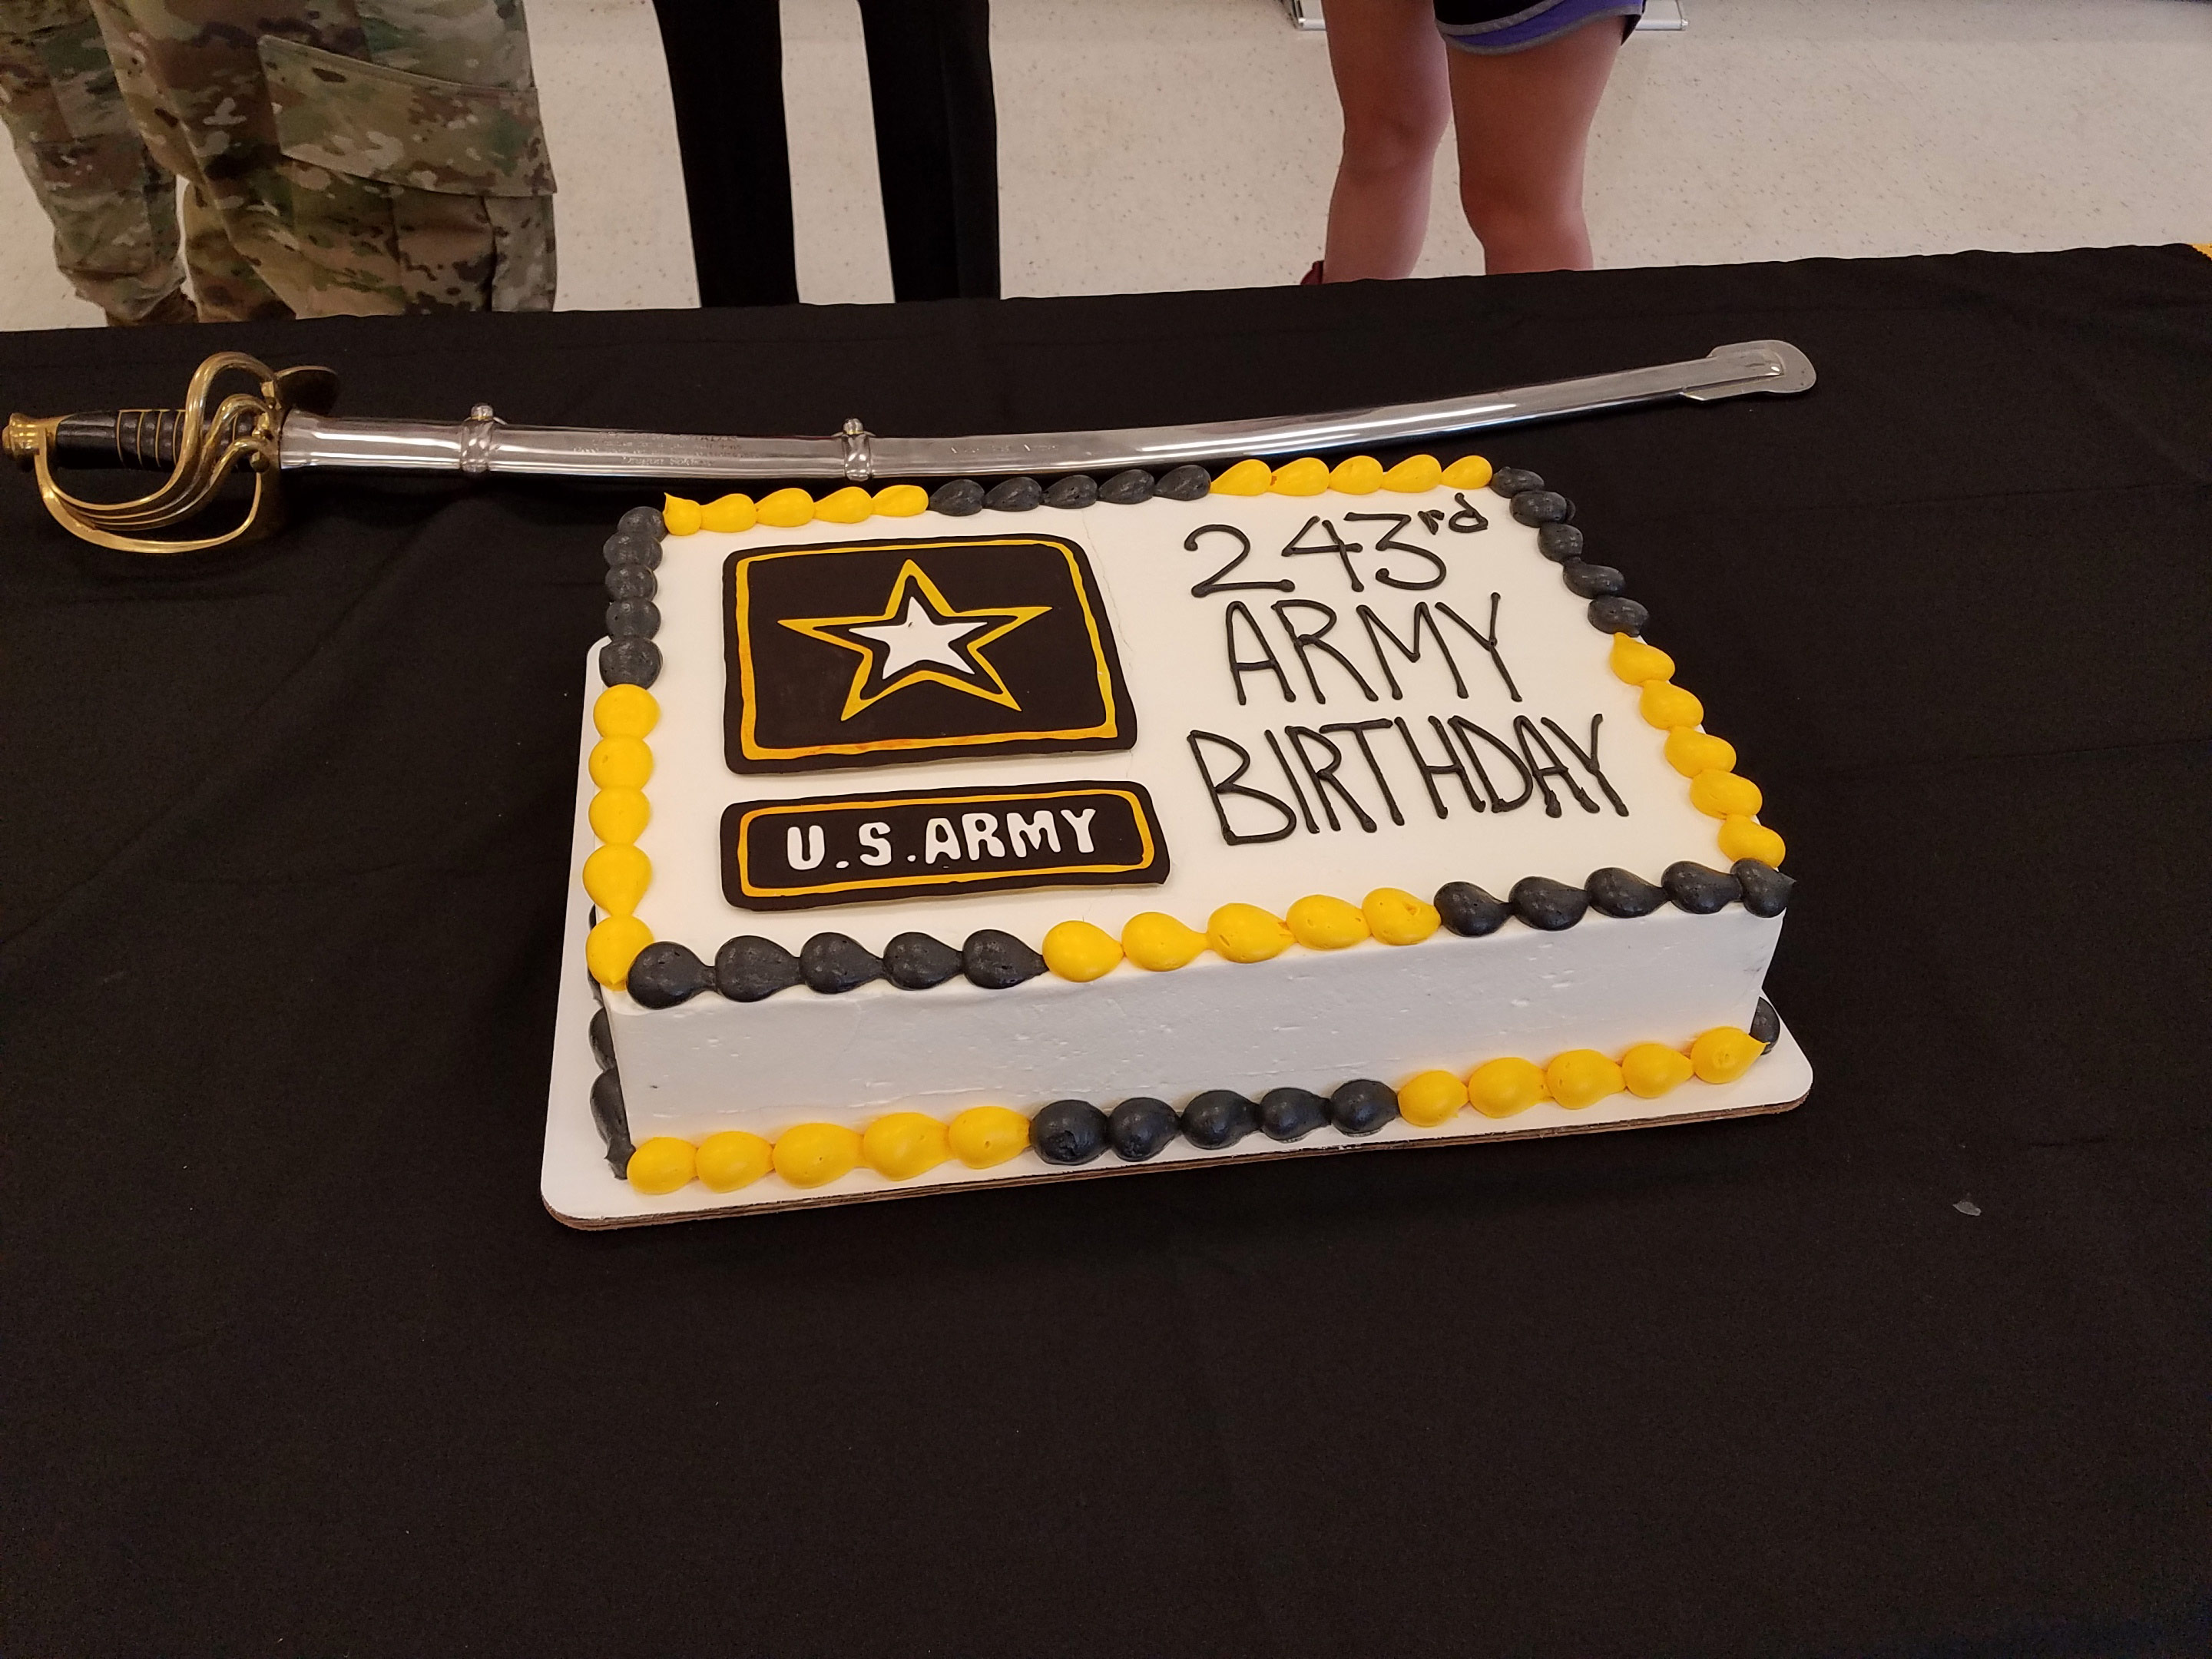 The Army birthday cake and saber lying beside it.